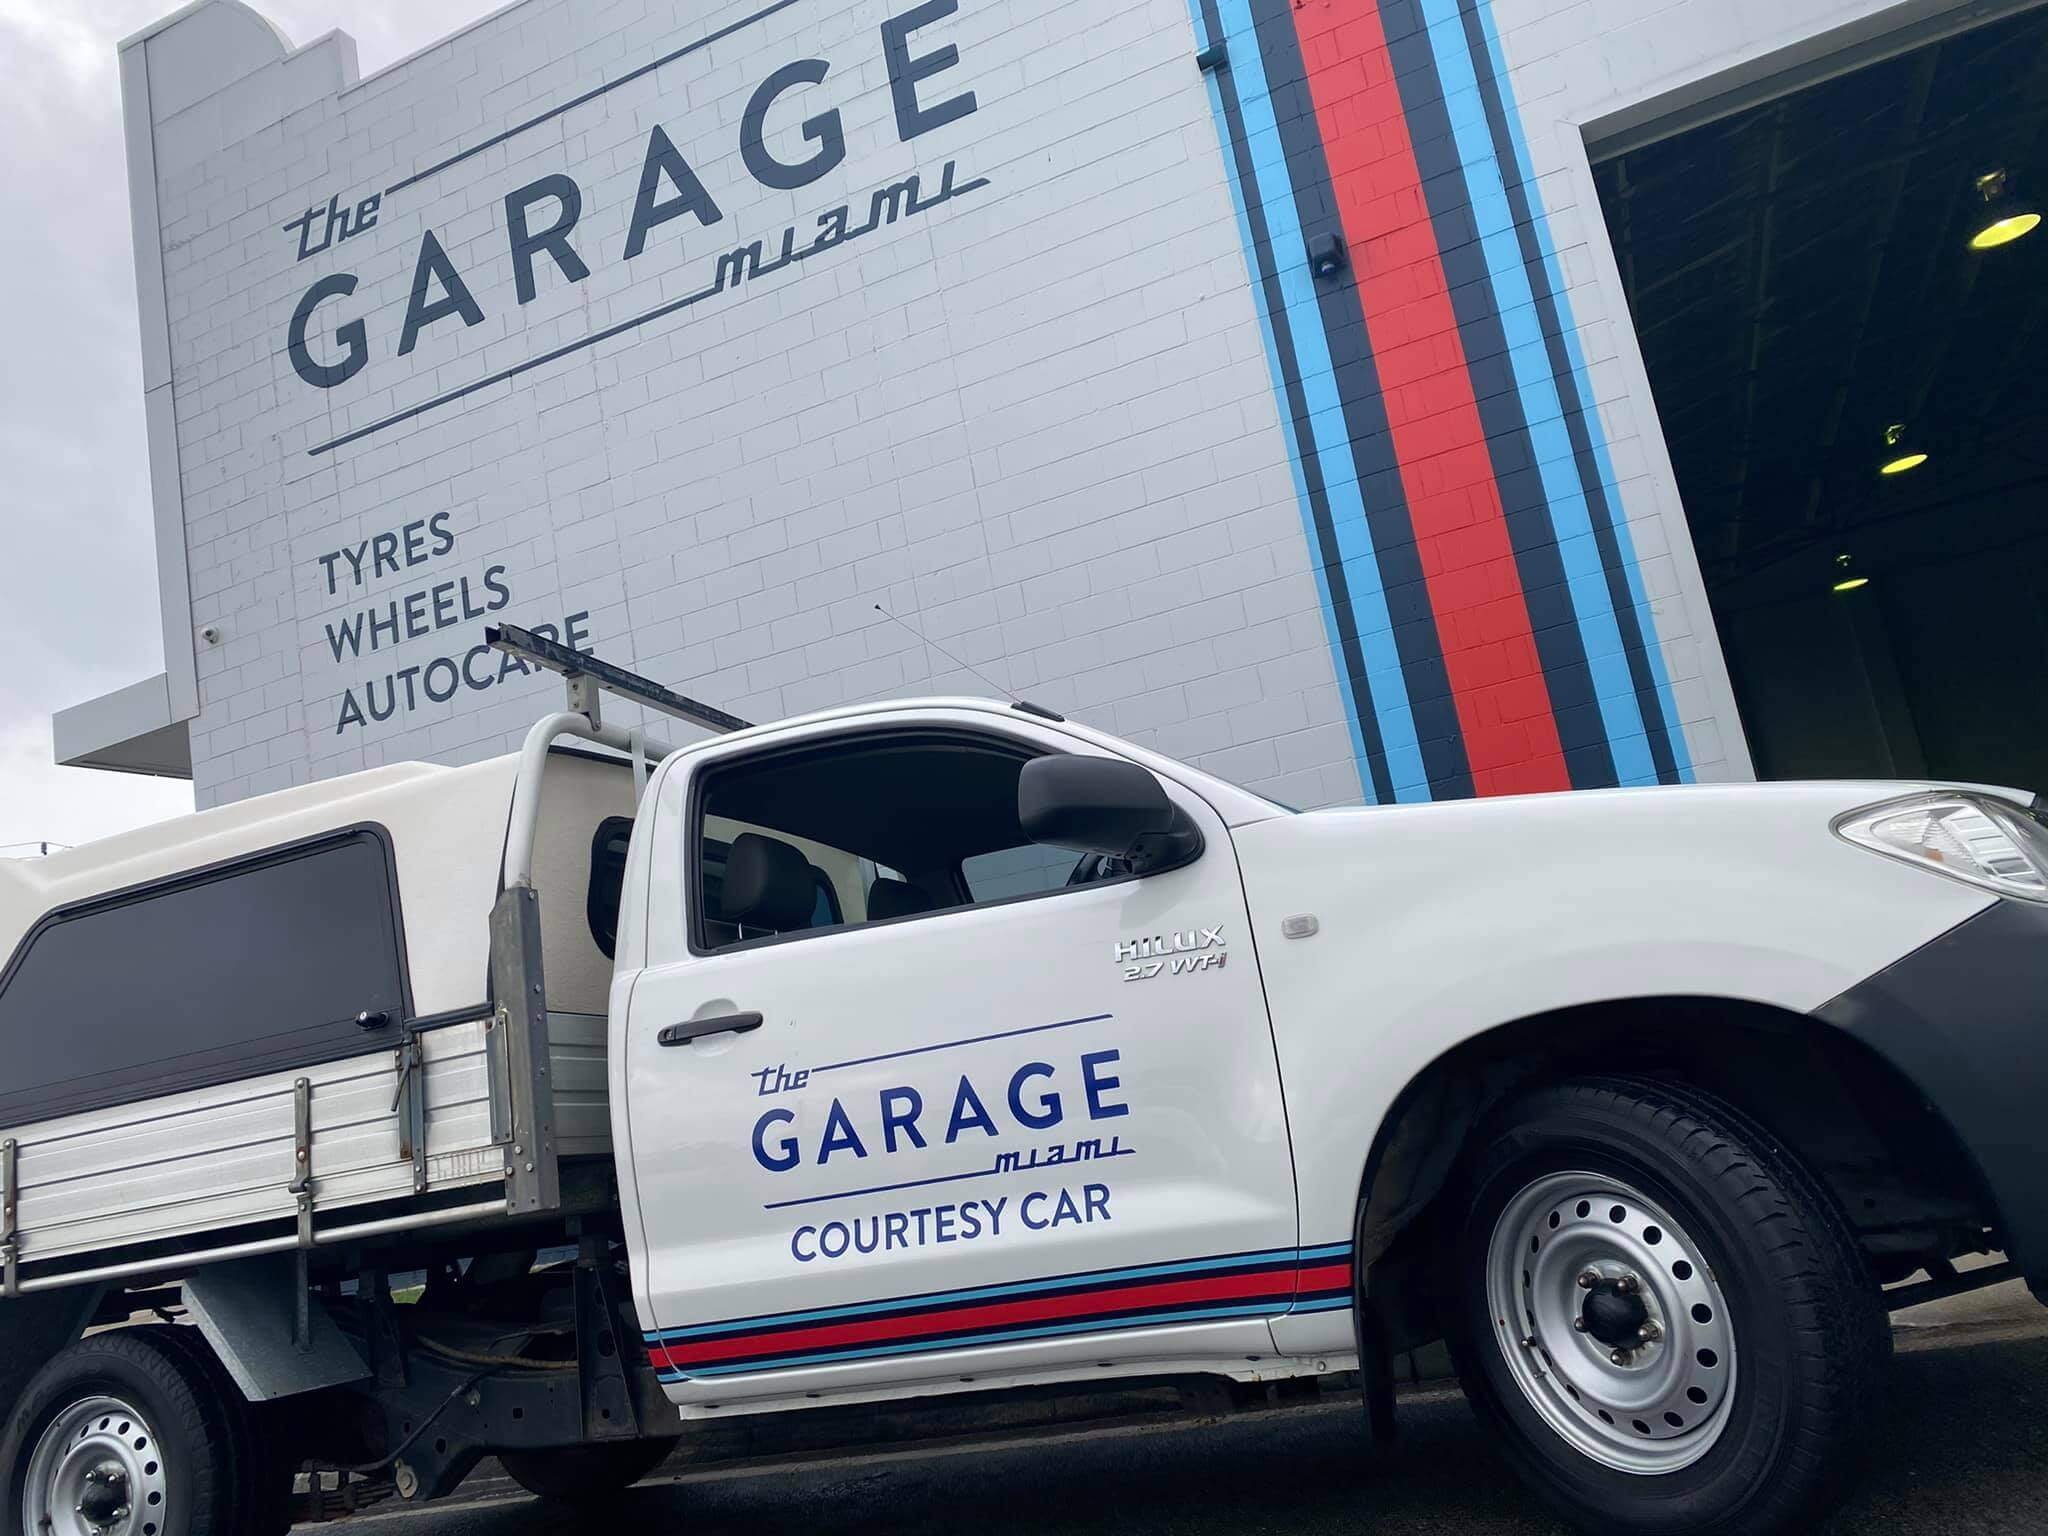 The Garage Miami Offers Tradie Courtesy Ute! cover image